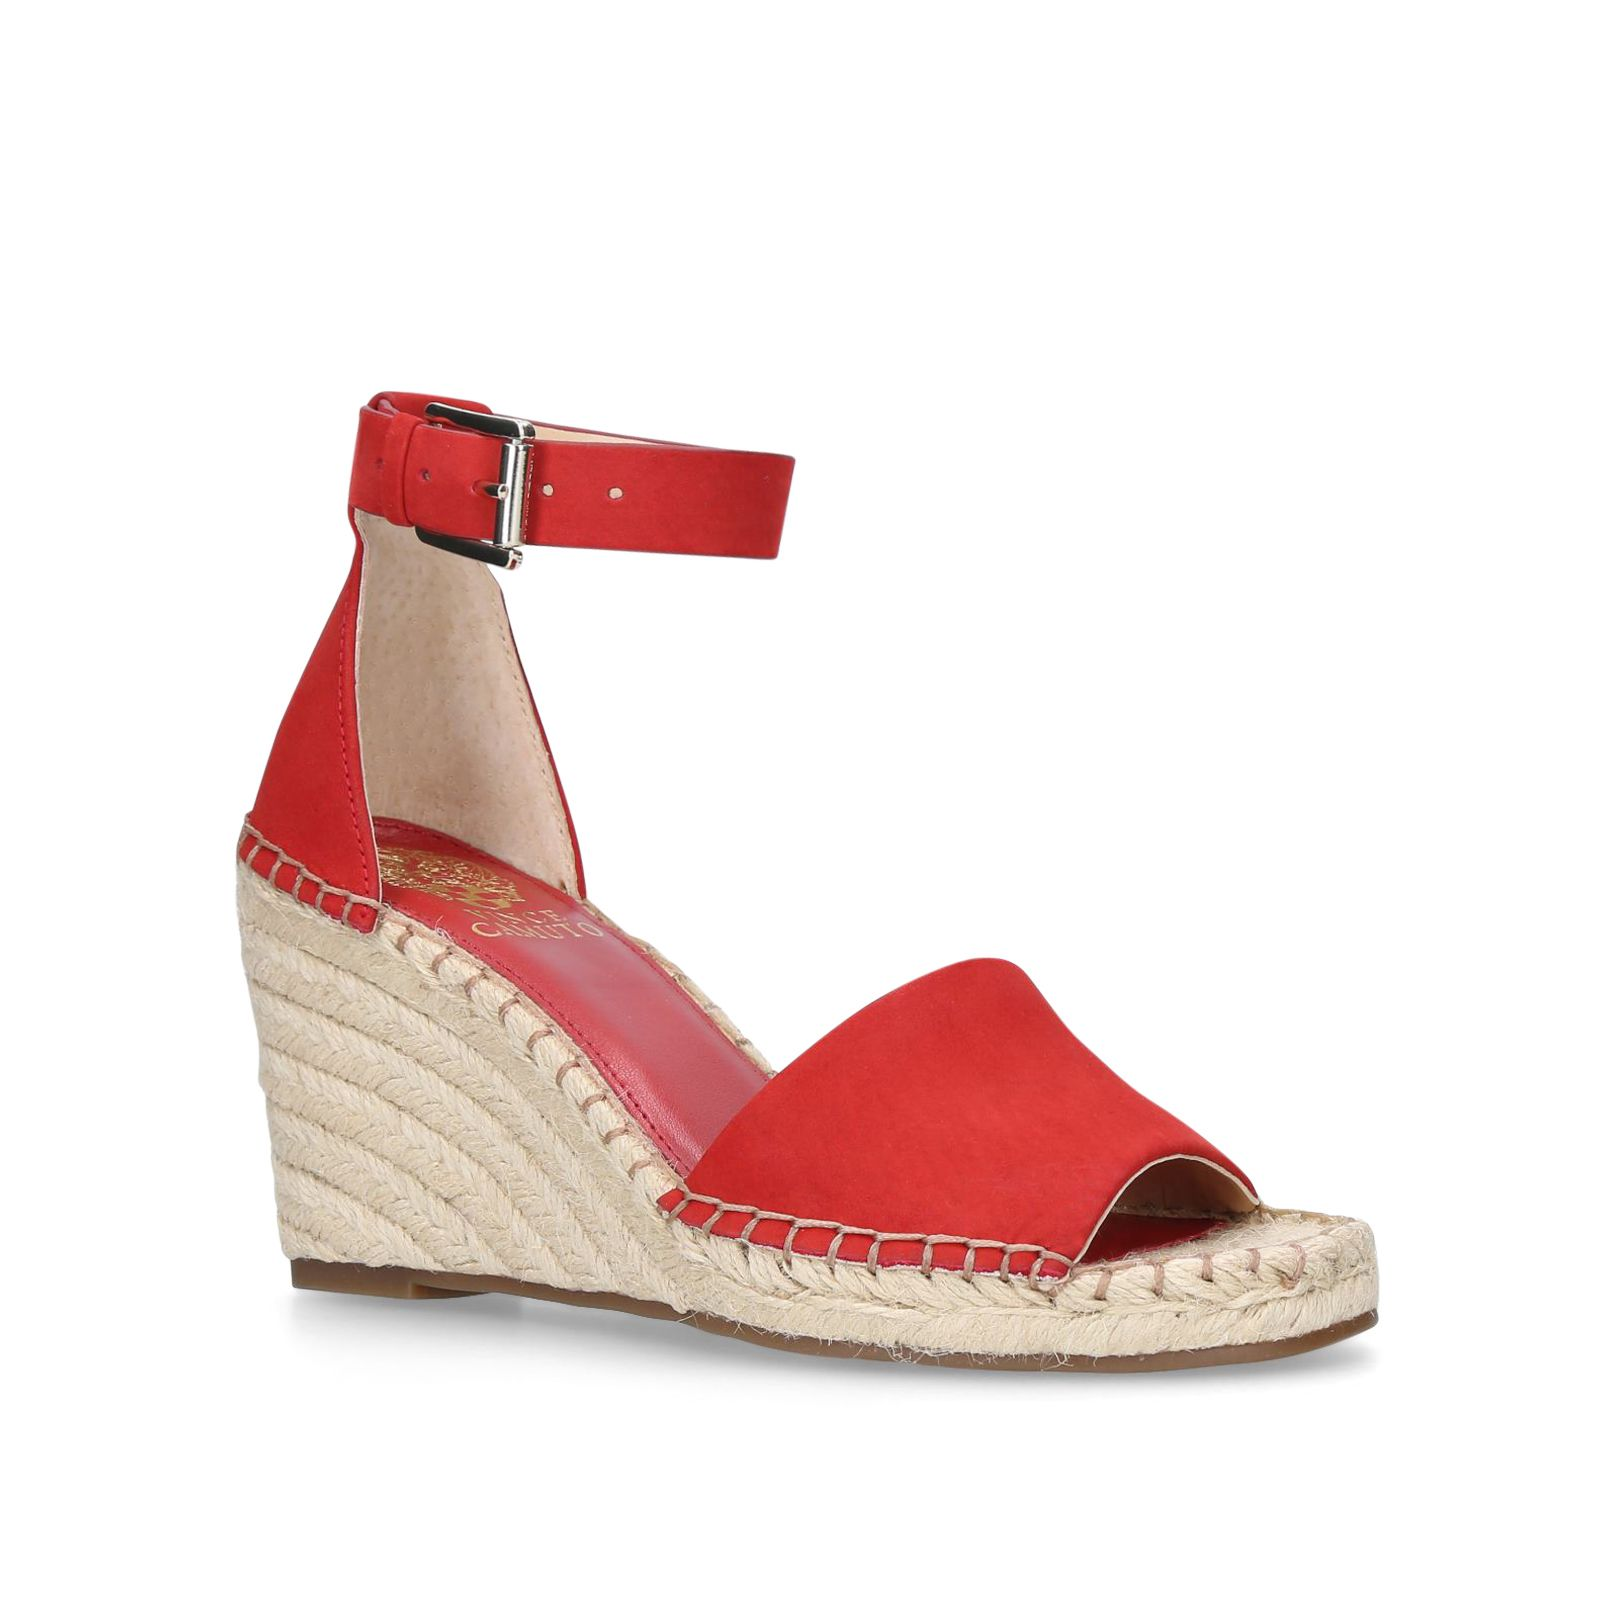 Vince Camuto Leera Sandals, Red